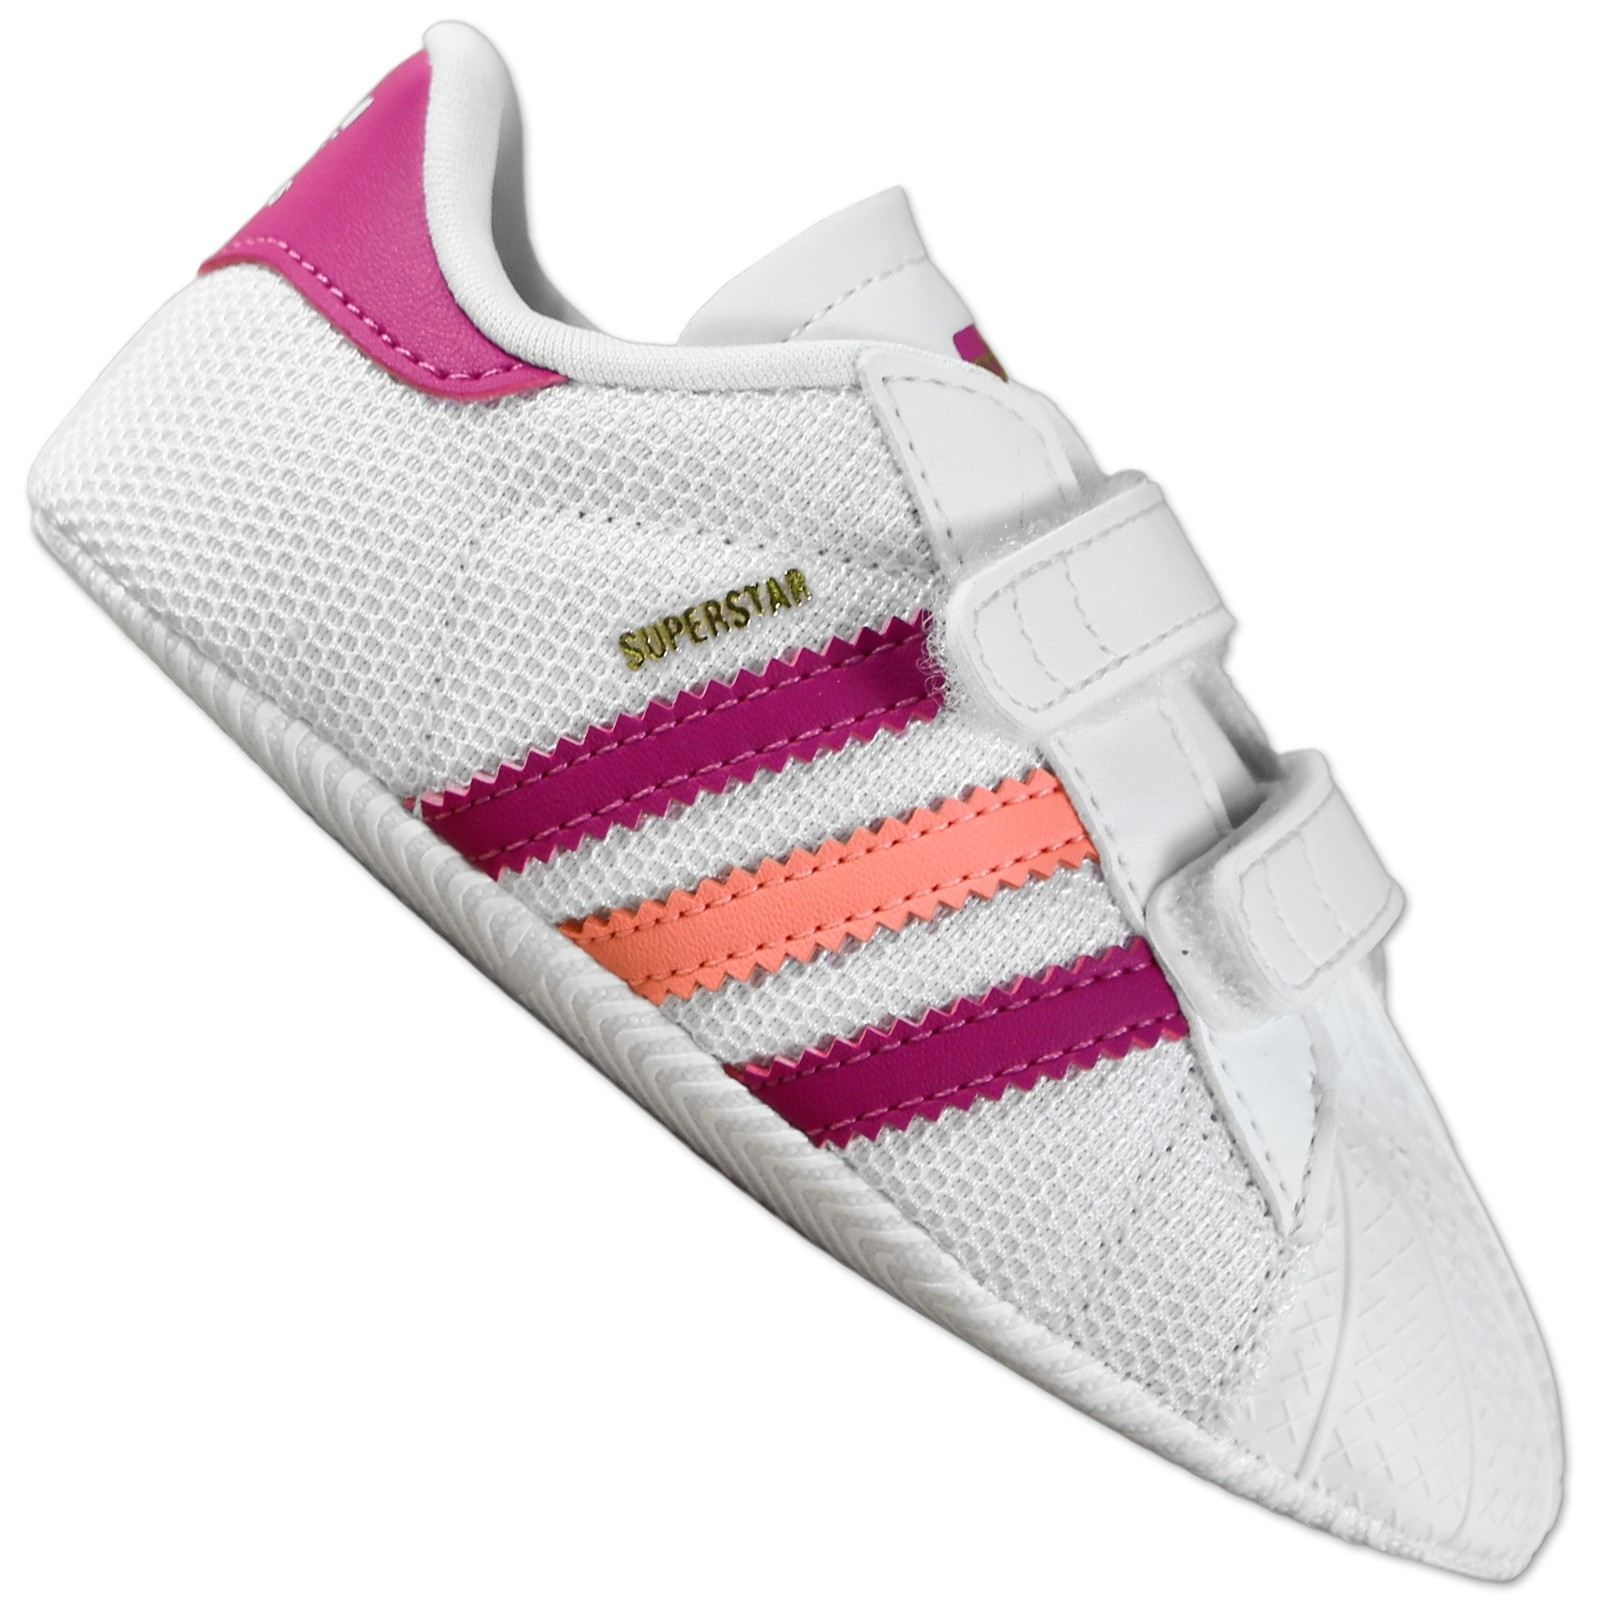 adidas superstar 2 crib baby sneaker krabbel schuhe weiss rosa pink gr 17 18 ebay. Black Bedroom Furniture Sets. Home Design Ideas